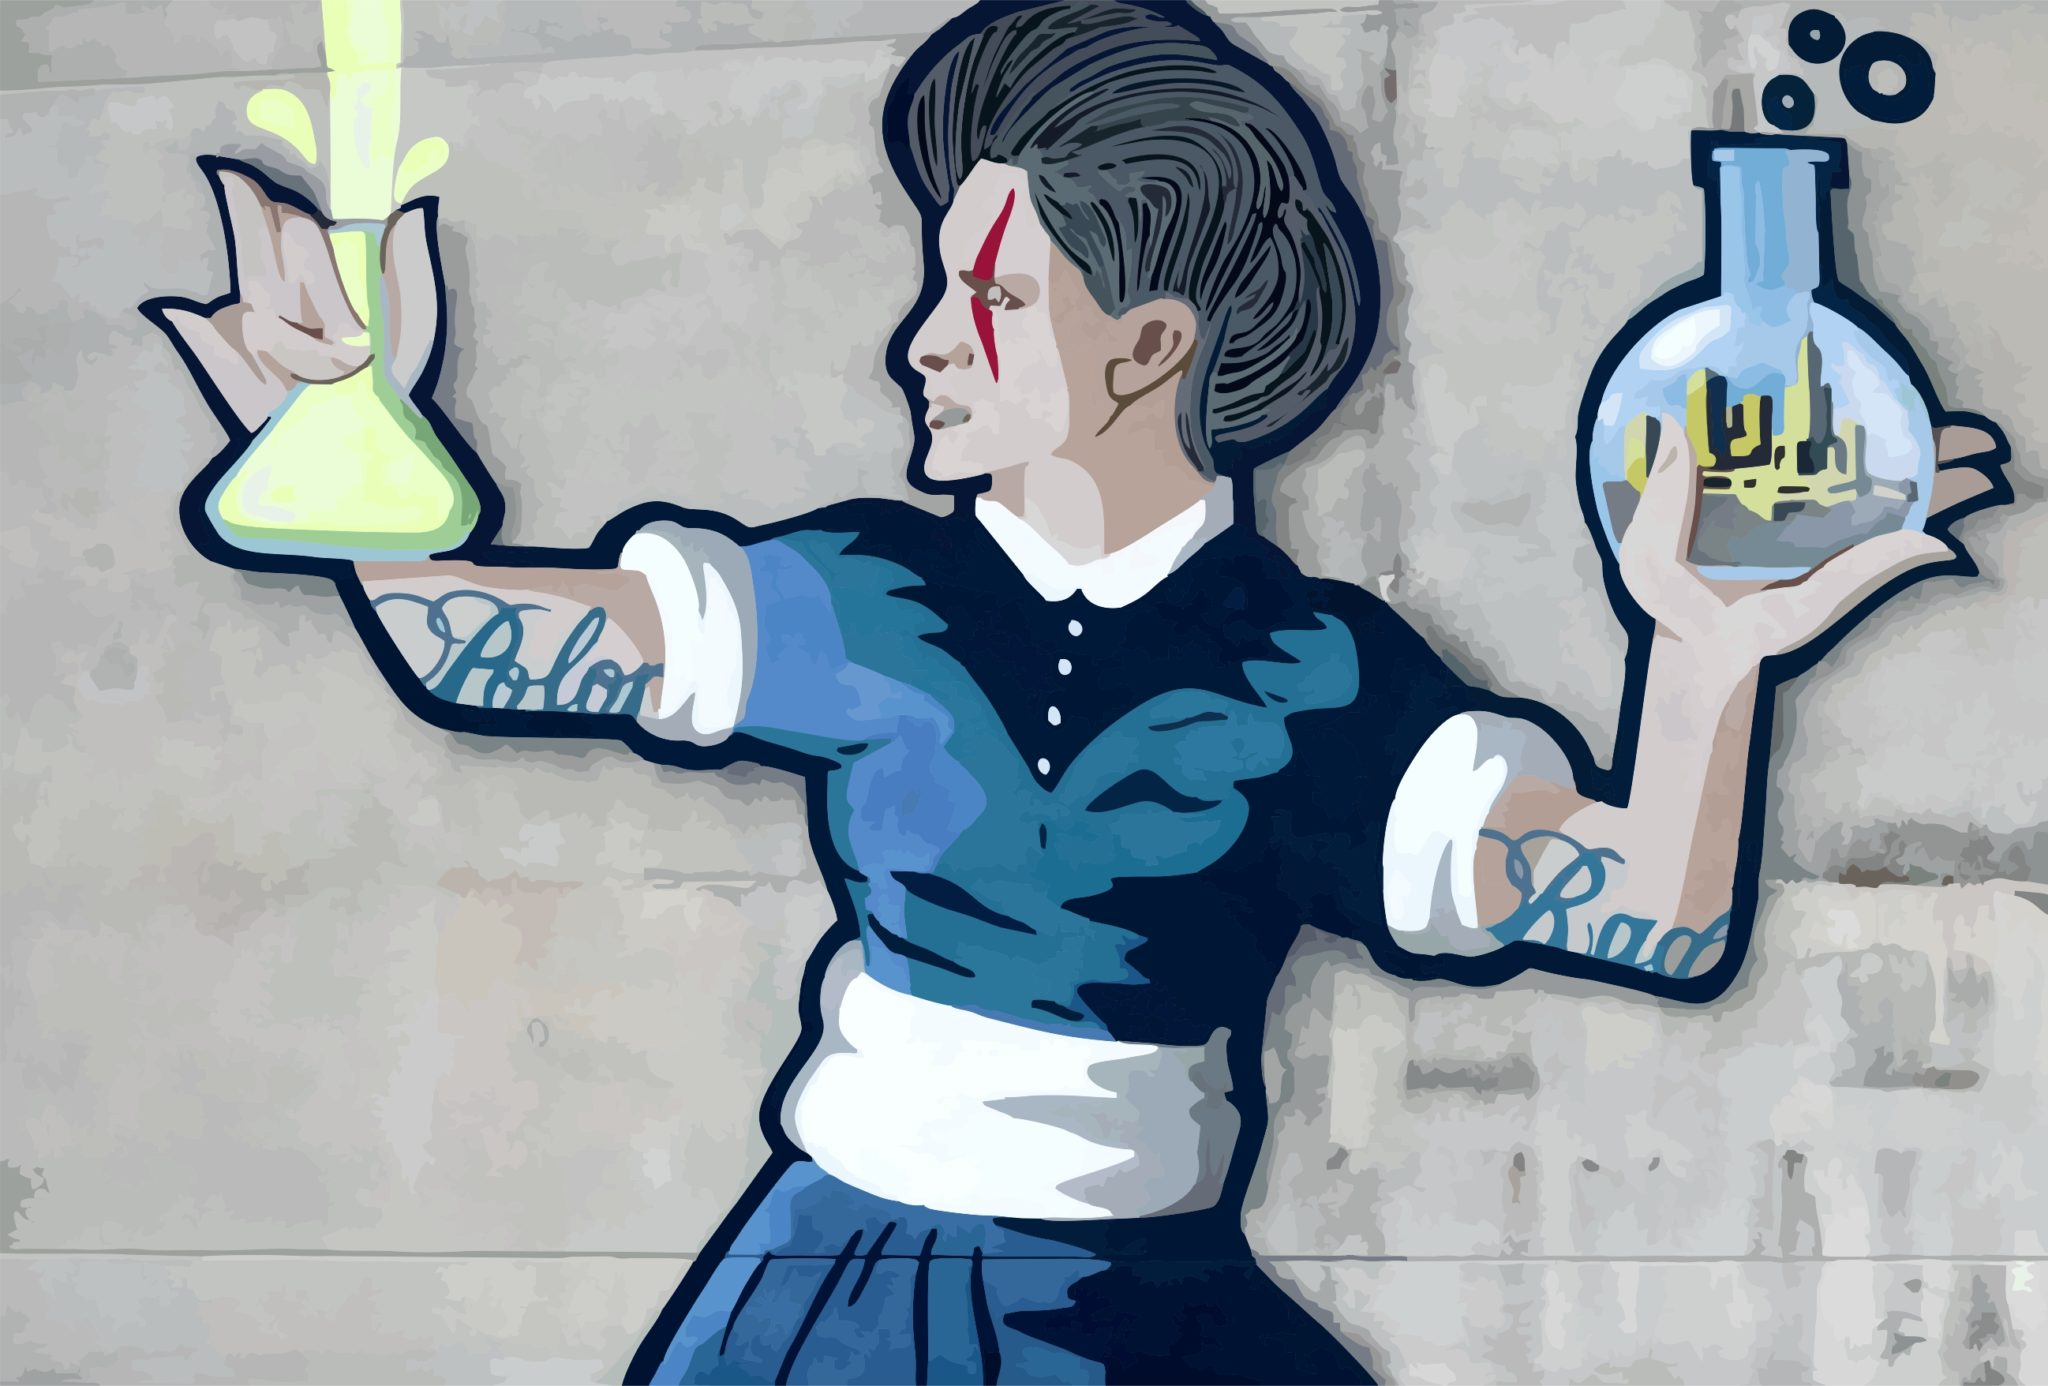 Marie Curie Mural in Warsaw